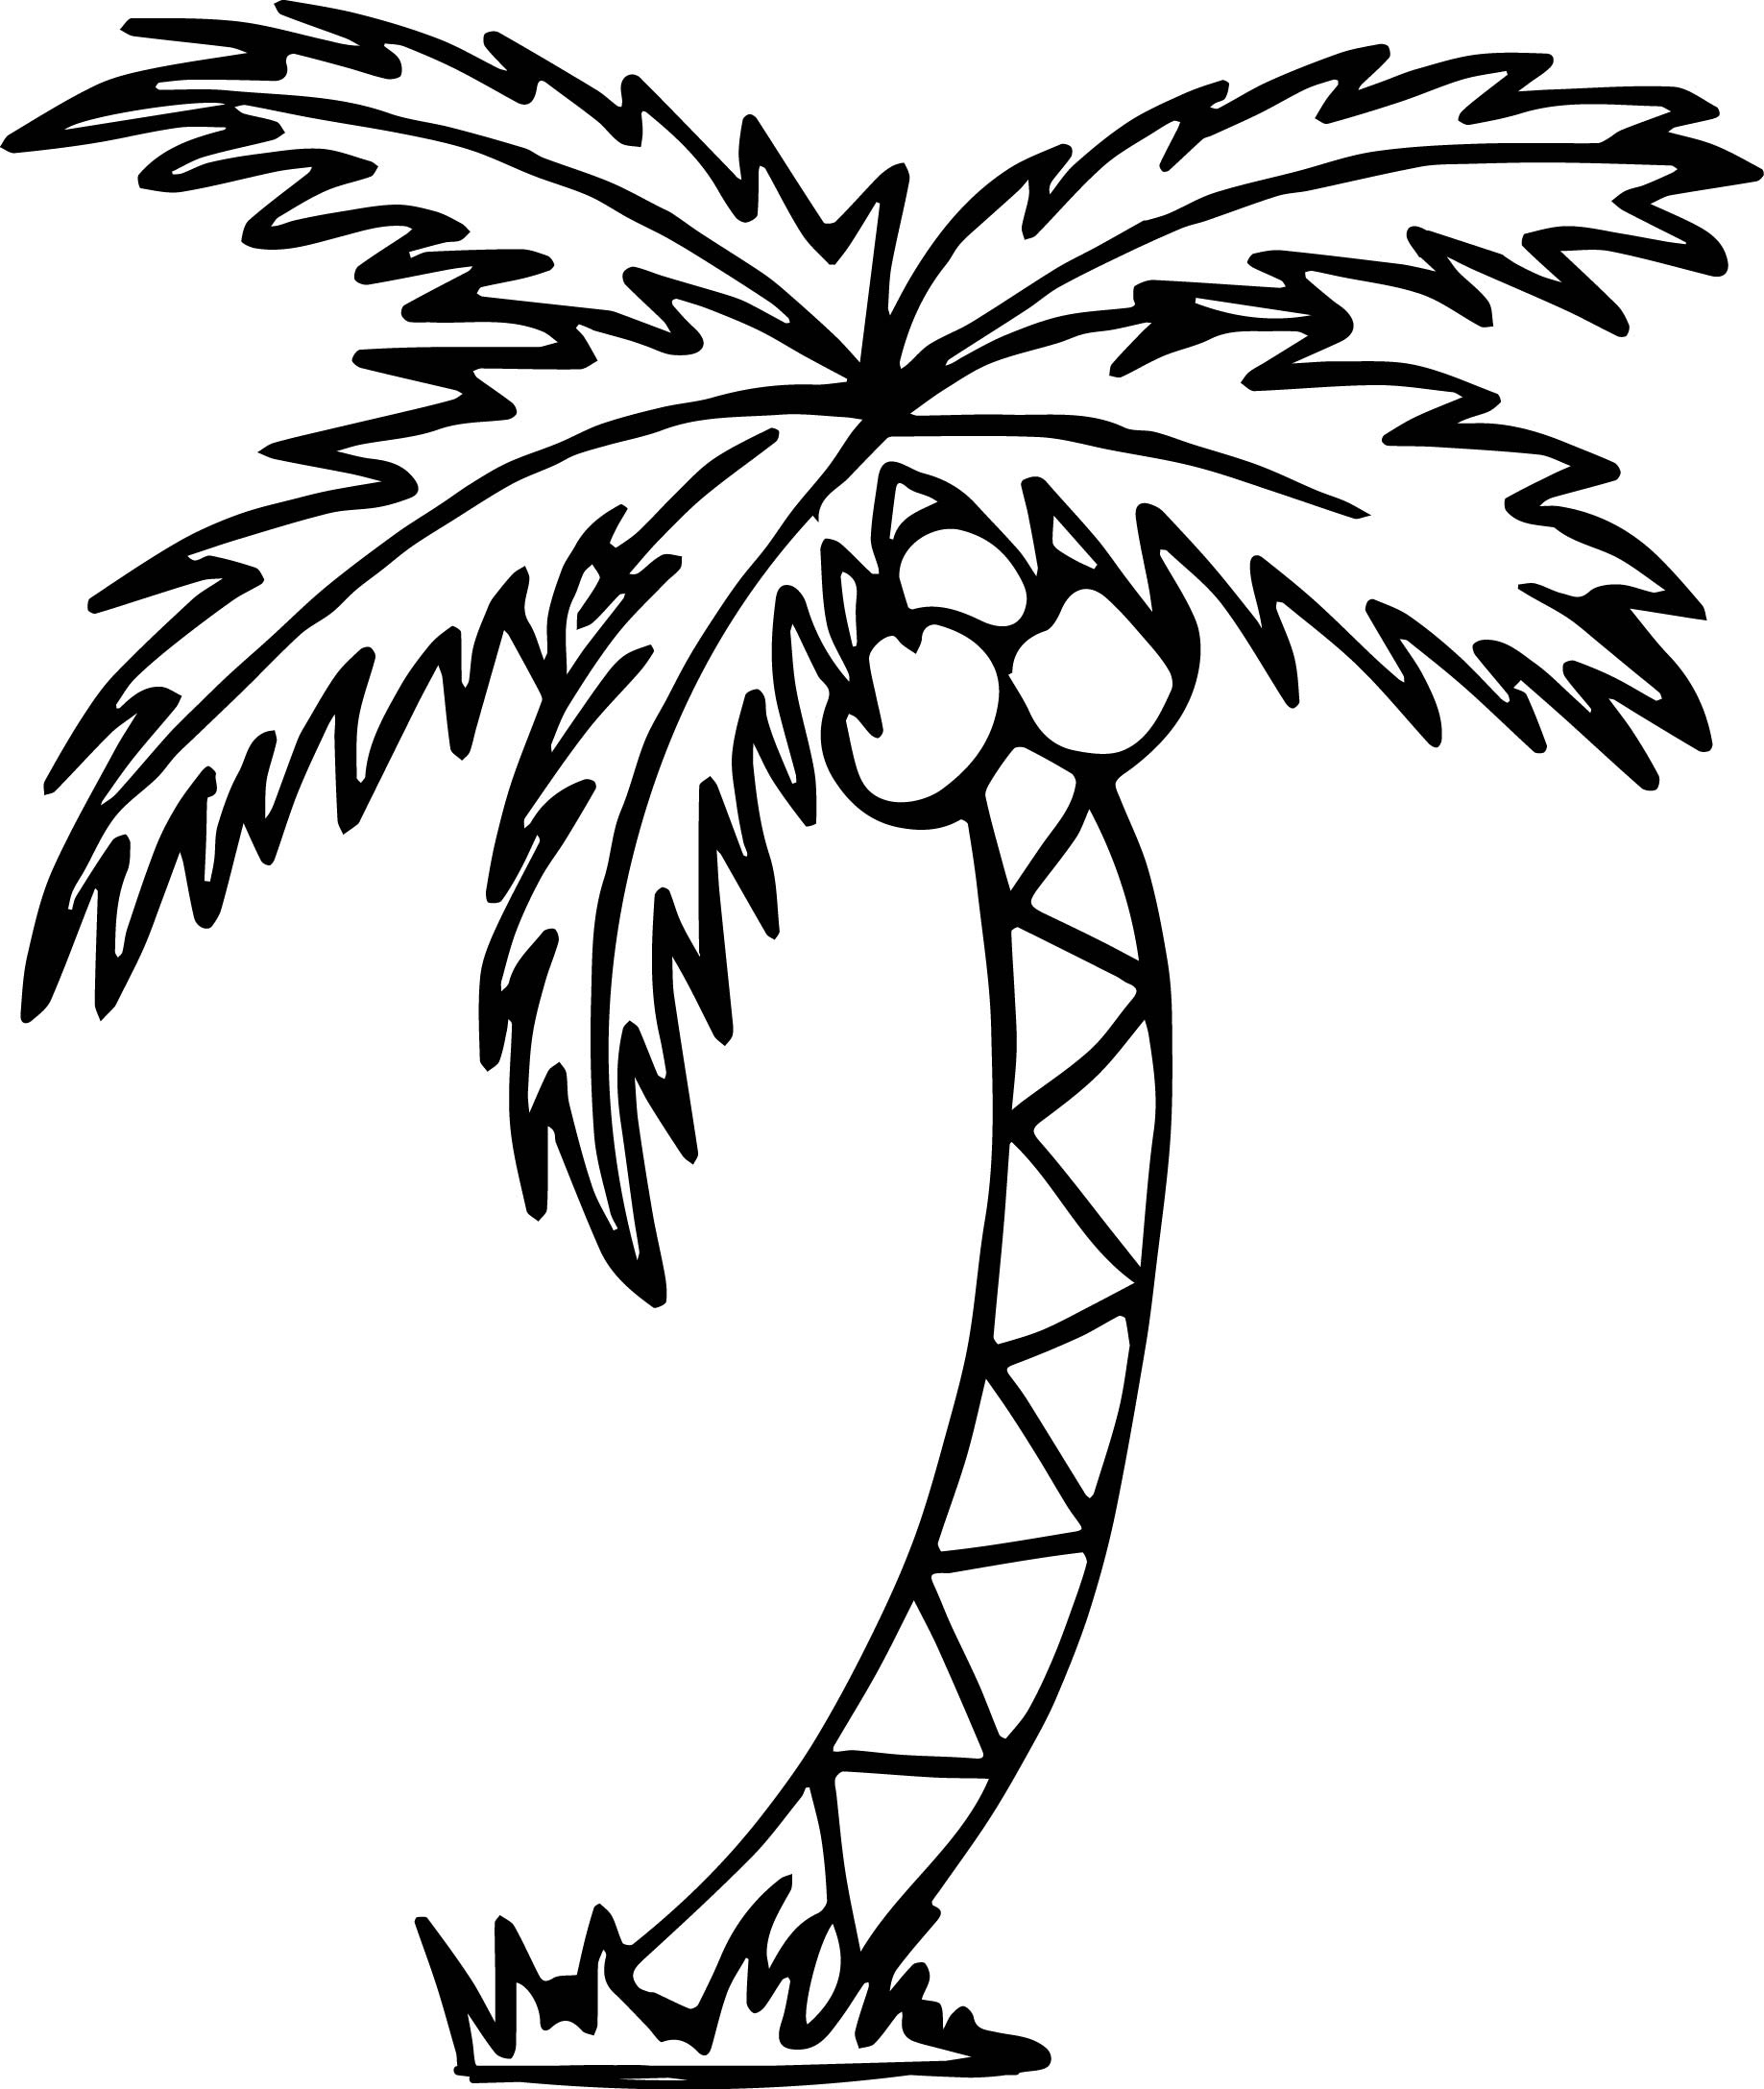 Coloring Pages Ideas: Remarkable Palm Tree Coloring Pages. Free - Free Printable Palm Tree Template